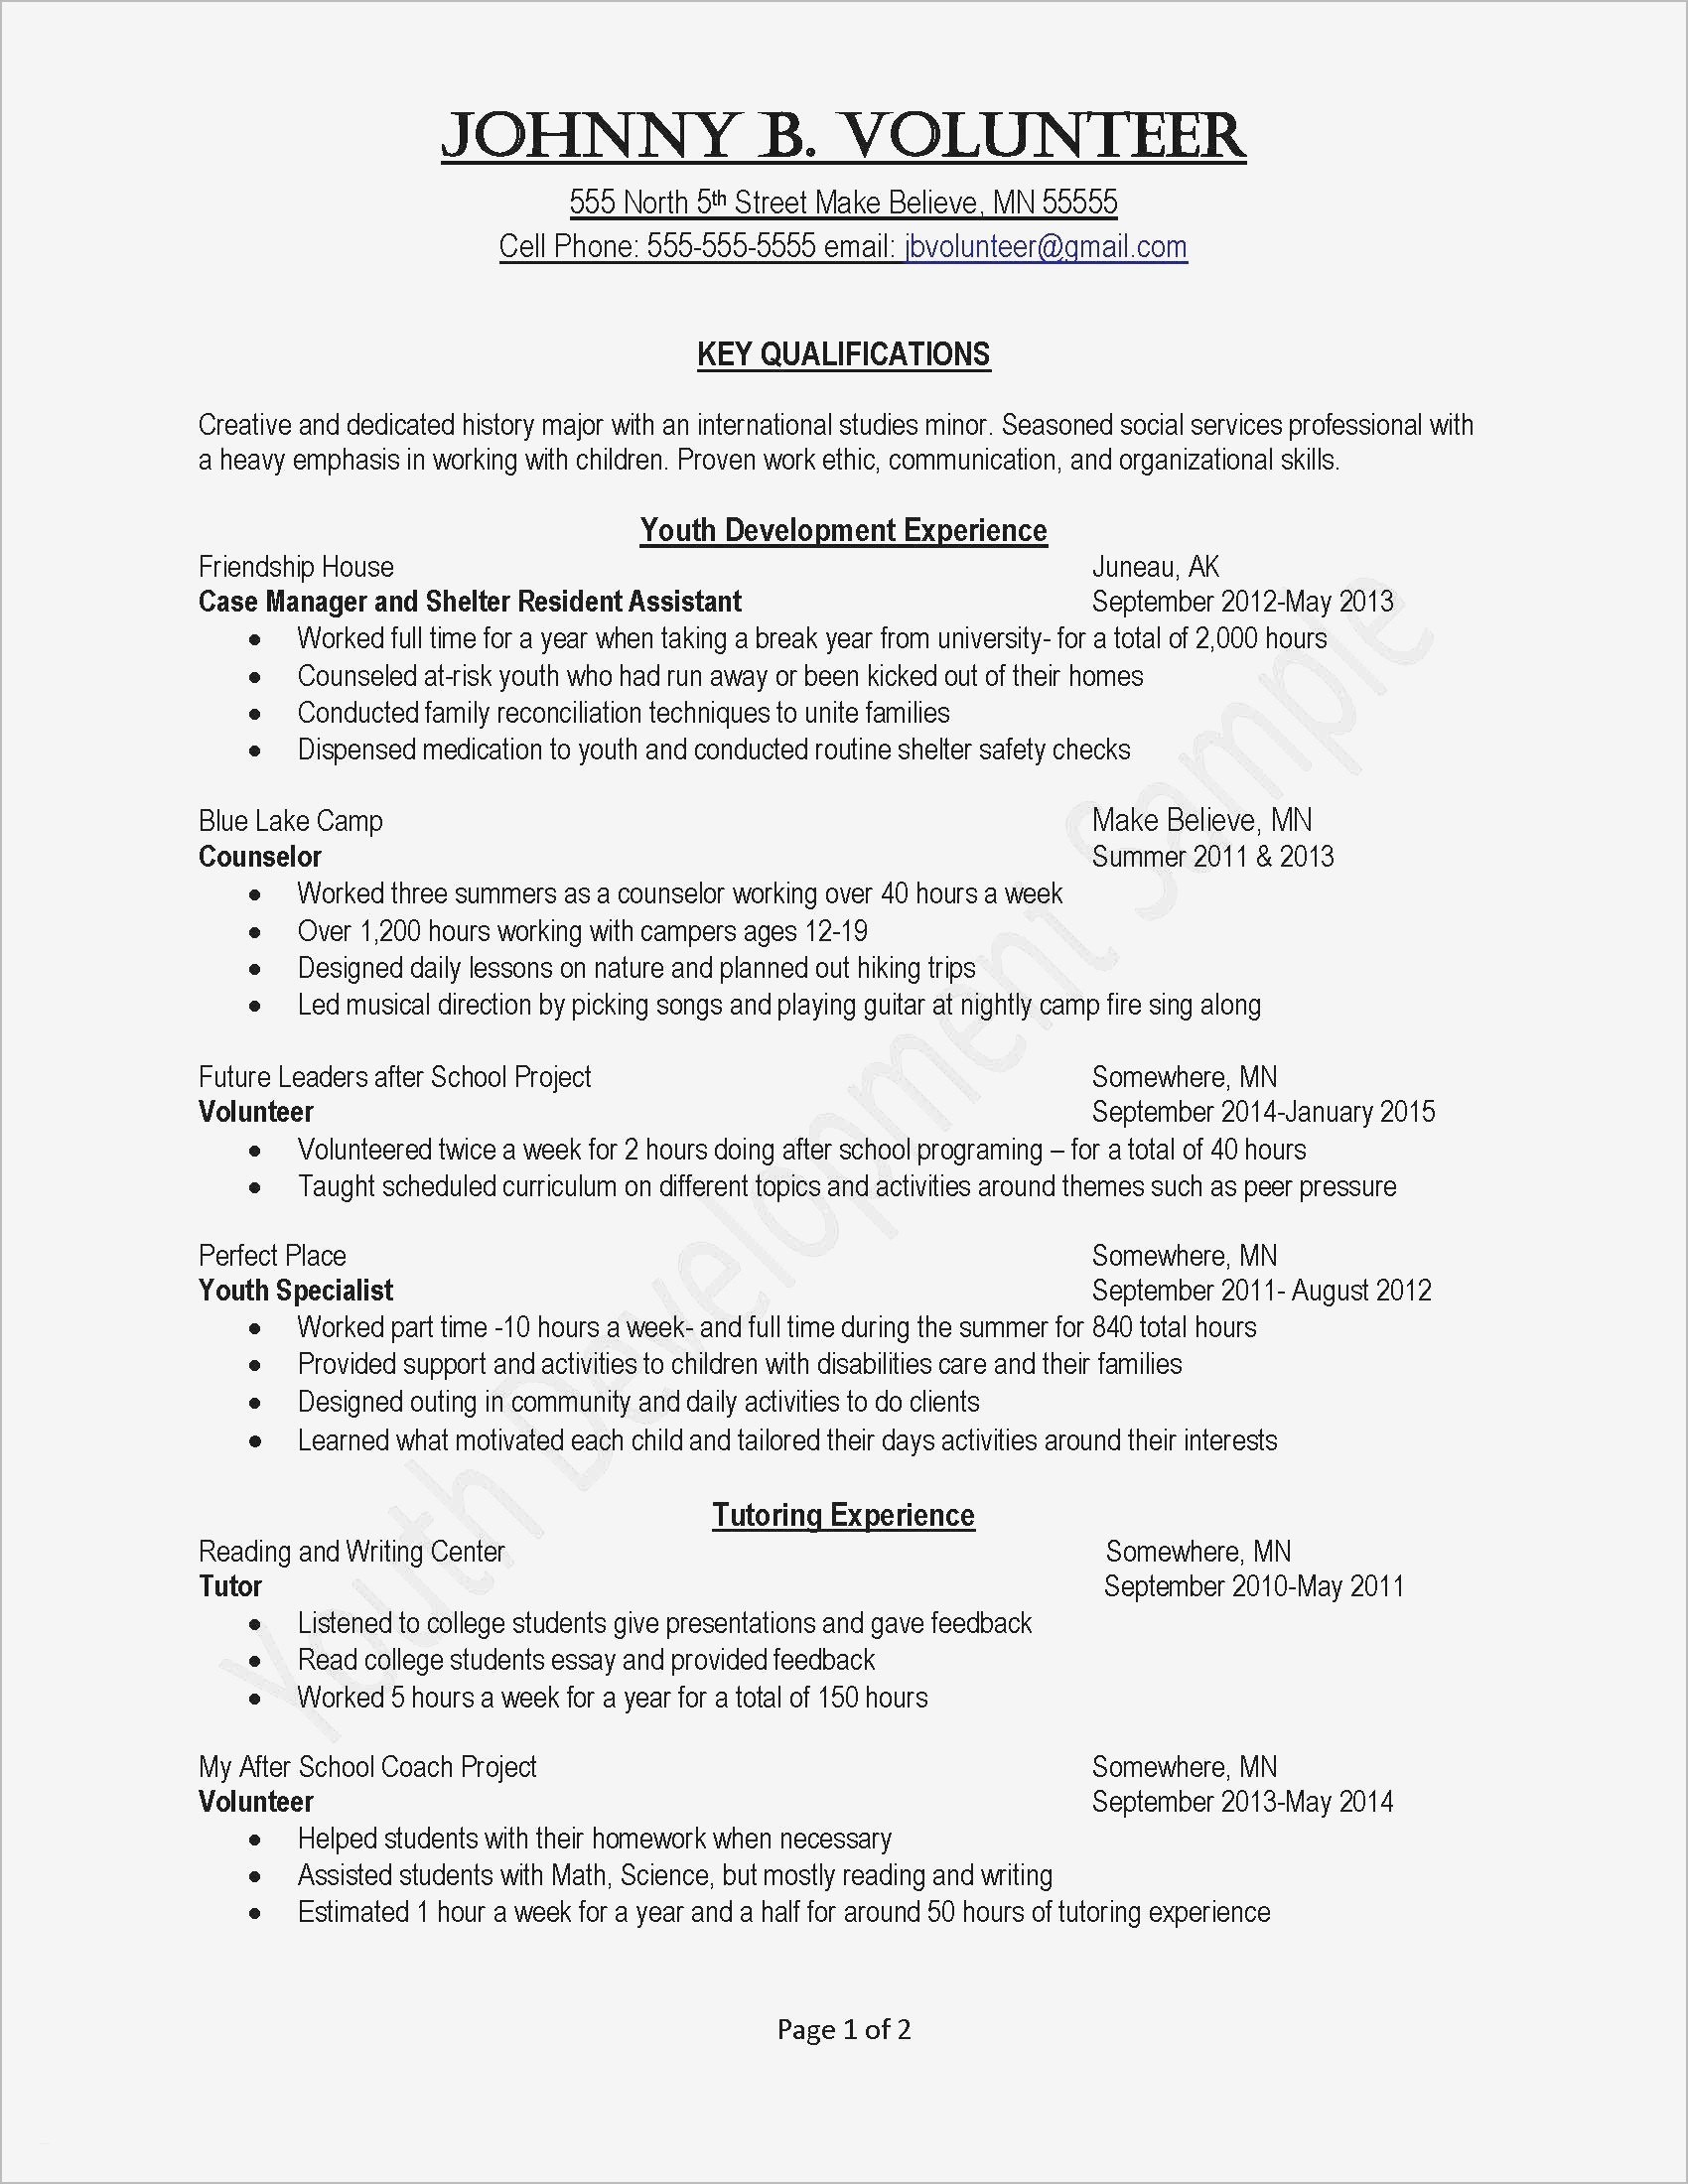 Business plan cover letter template samples letter cover templates business plan cover letter template sample email cover letter for business proposal inspirational job friedricerecipe Choice Image